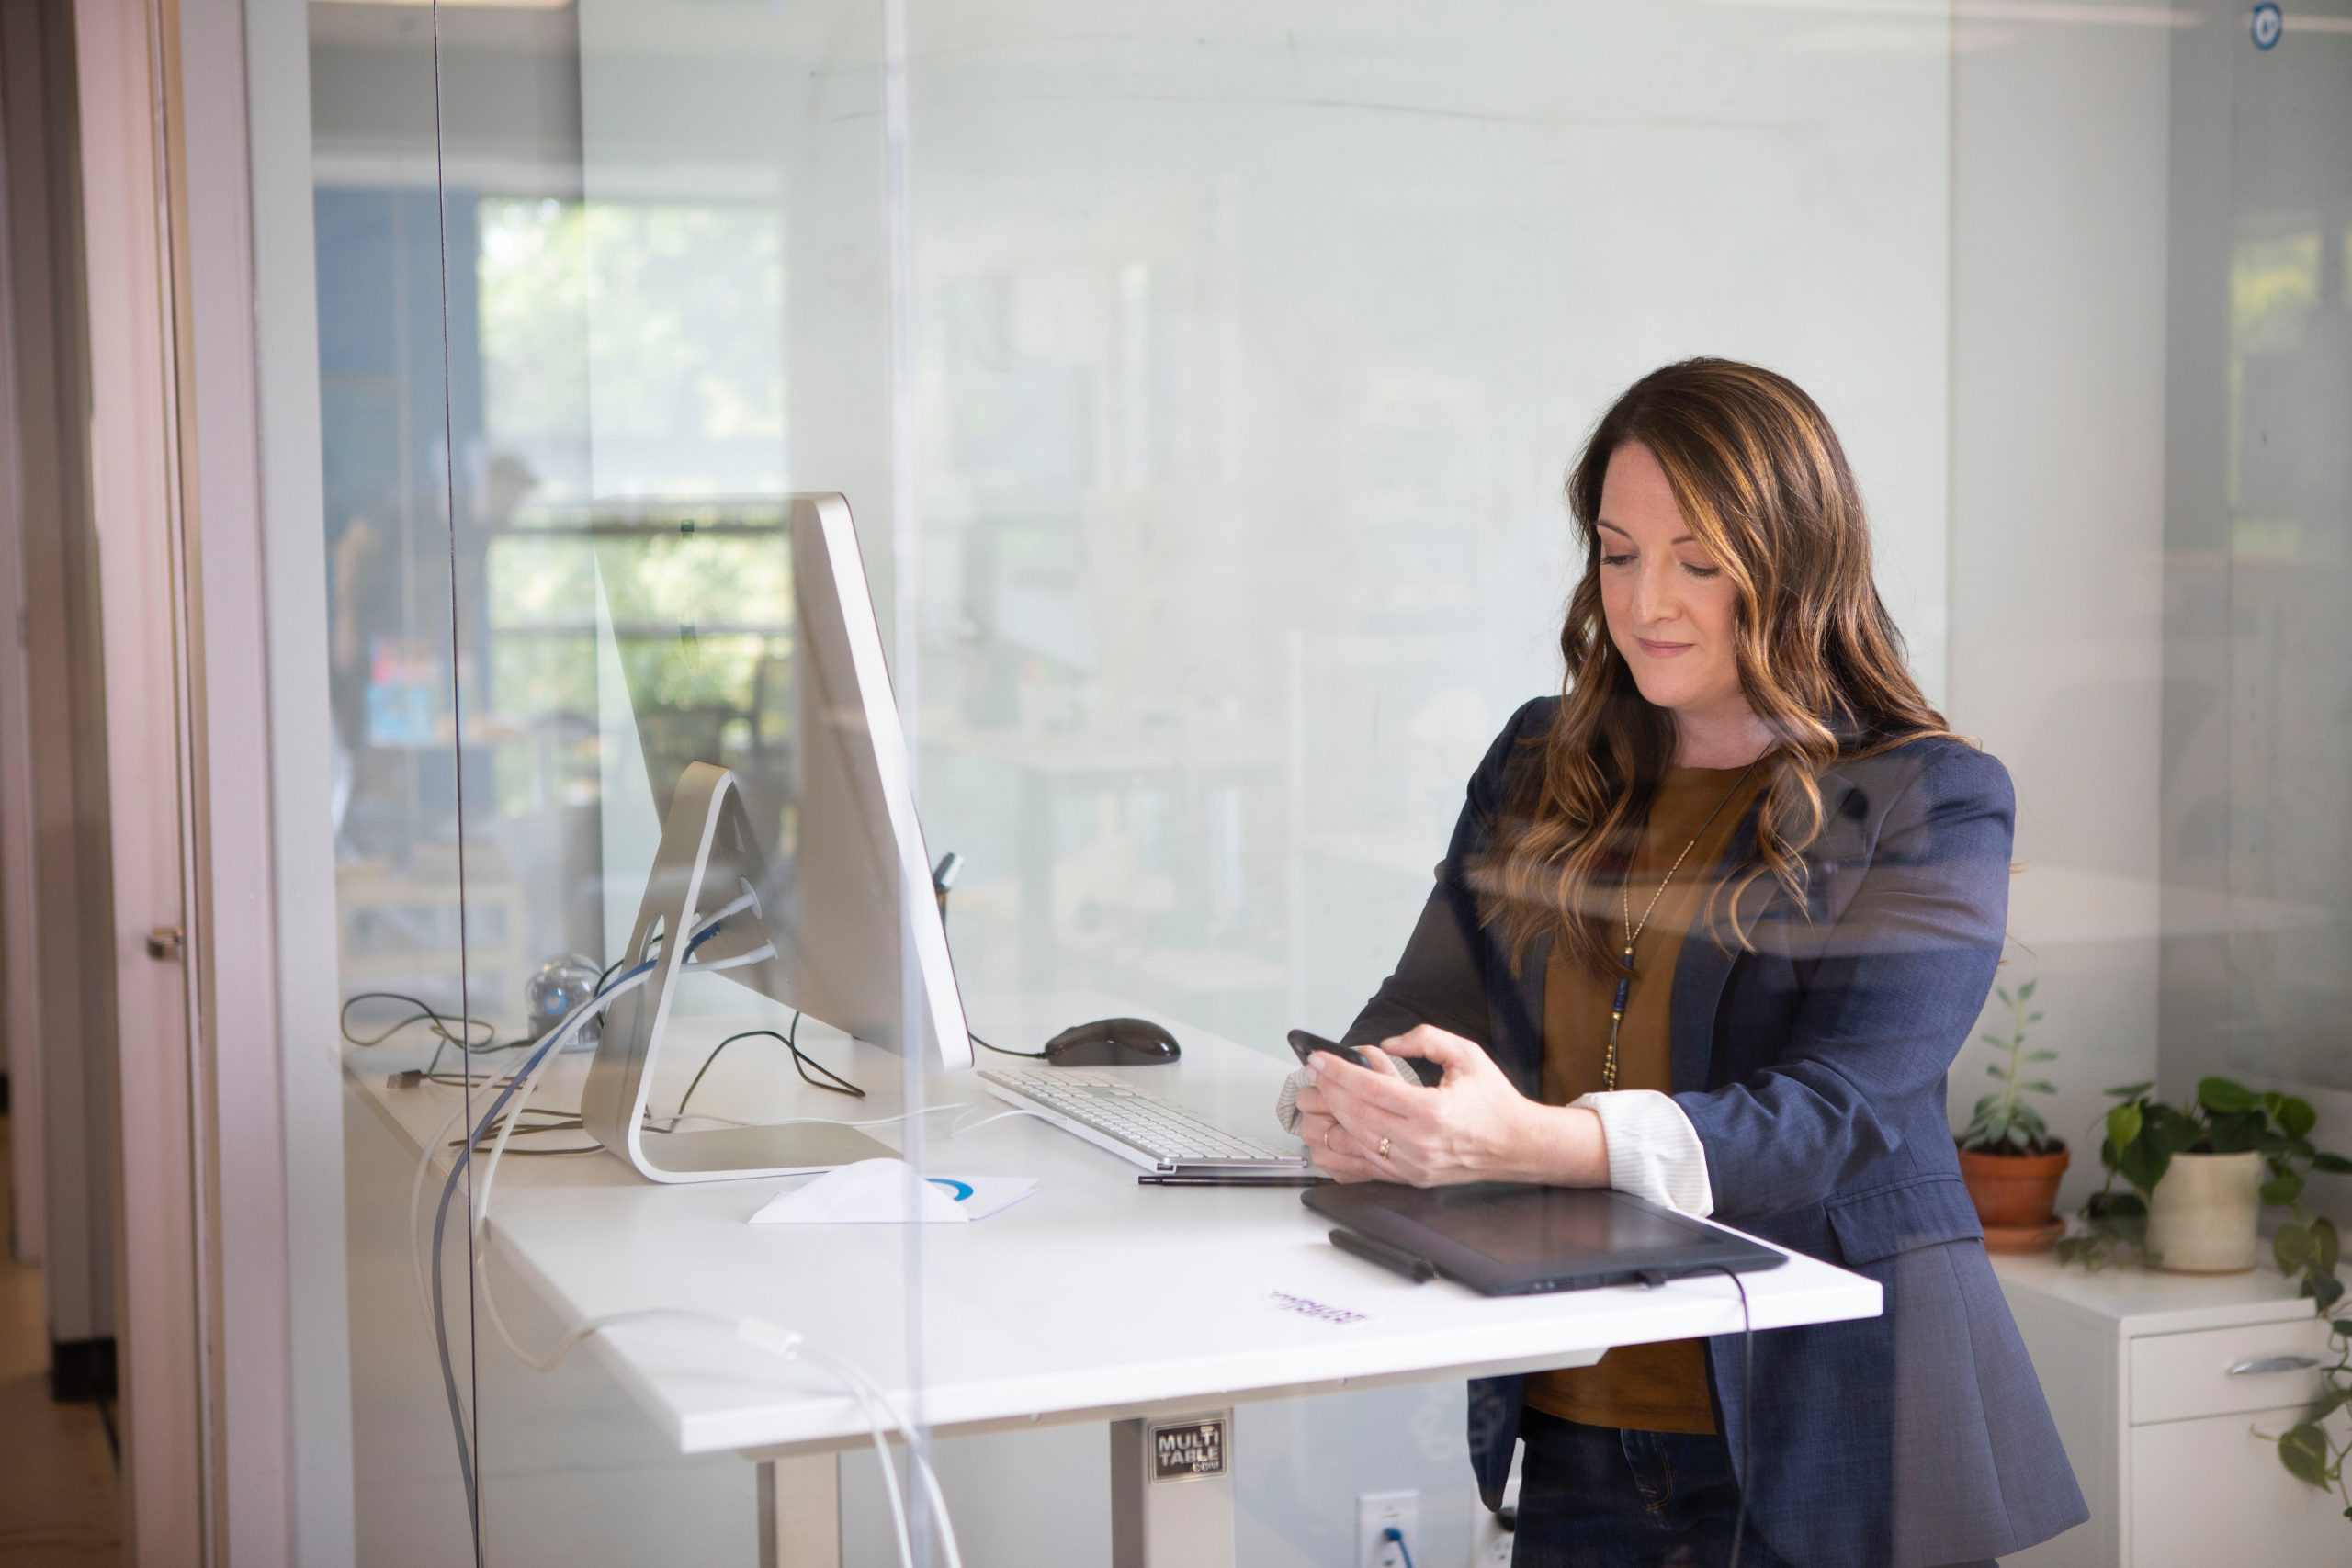 Sales woman checking her phone standing at desk with laptop